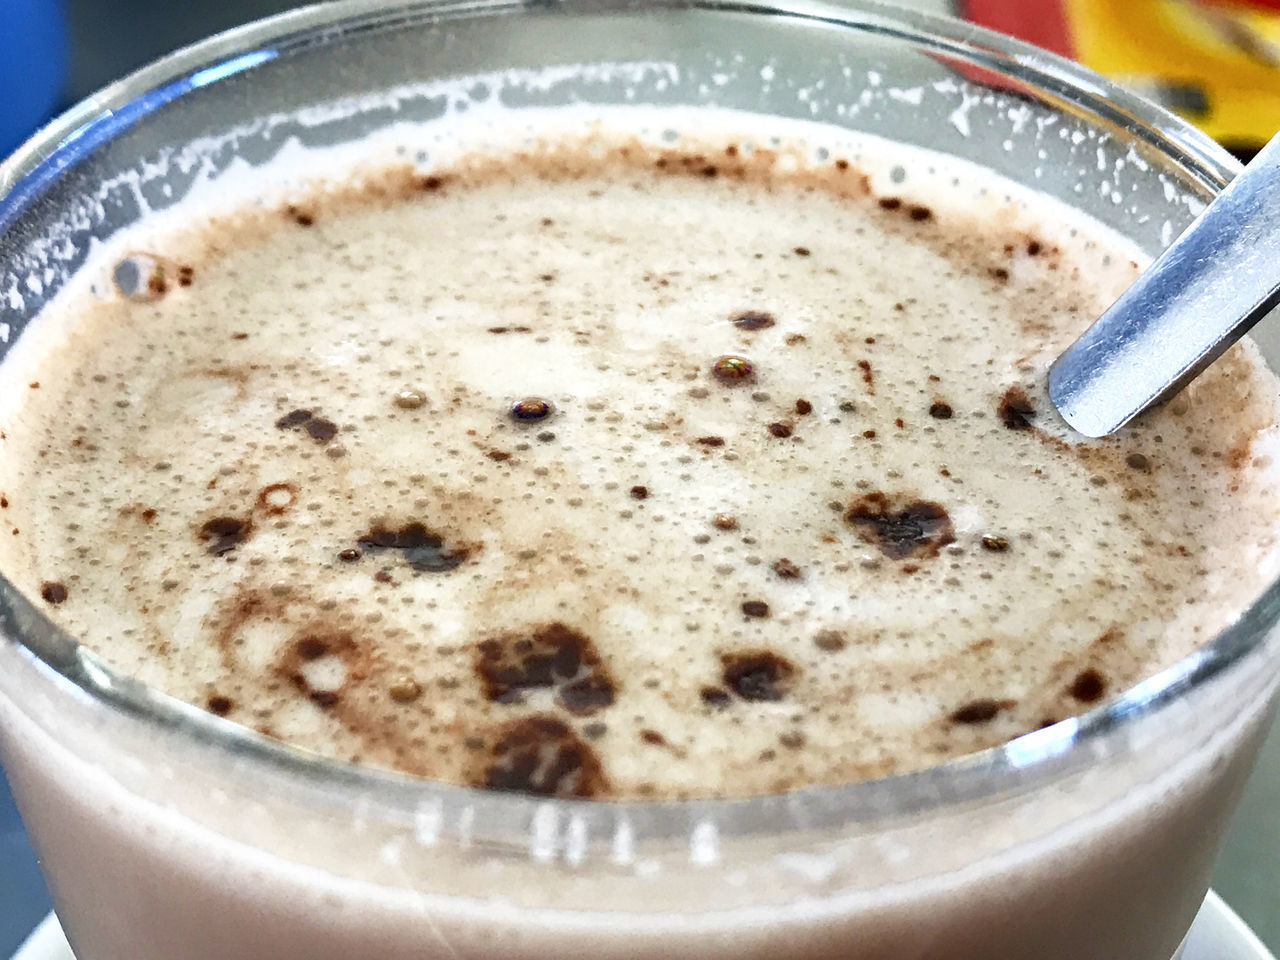 Breakfast Cacao Close-up Cocoa Coffee - Drink Coffee Time Colacao Cup Day Dessert Dessert Time! Desserts Drink Drinks Food Food And Drink Food And Drink Freshness Frothy Drink Indoors  Milk No People Refreshment Sweet Drink Sweet Food